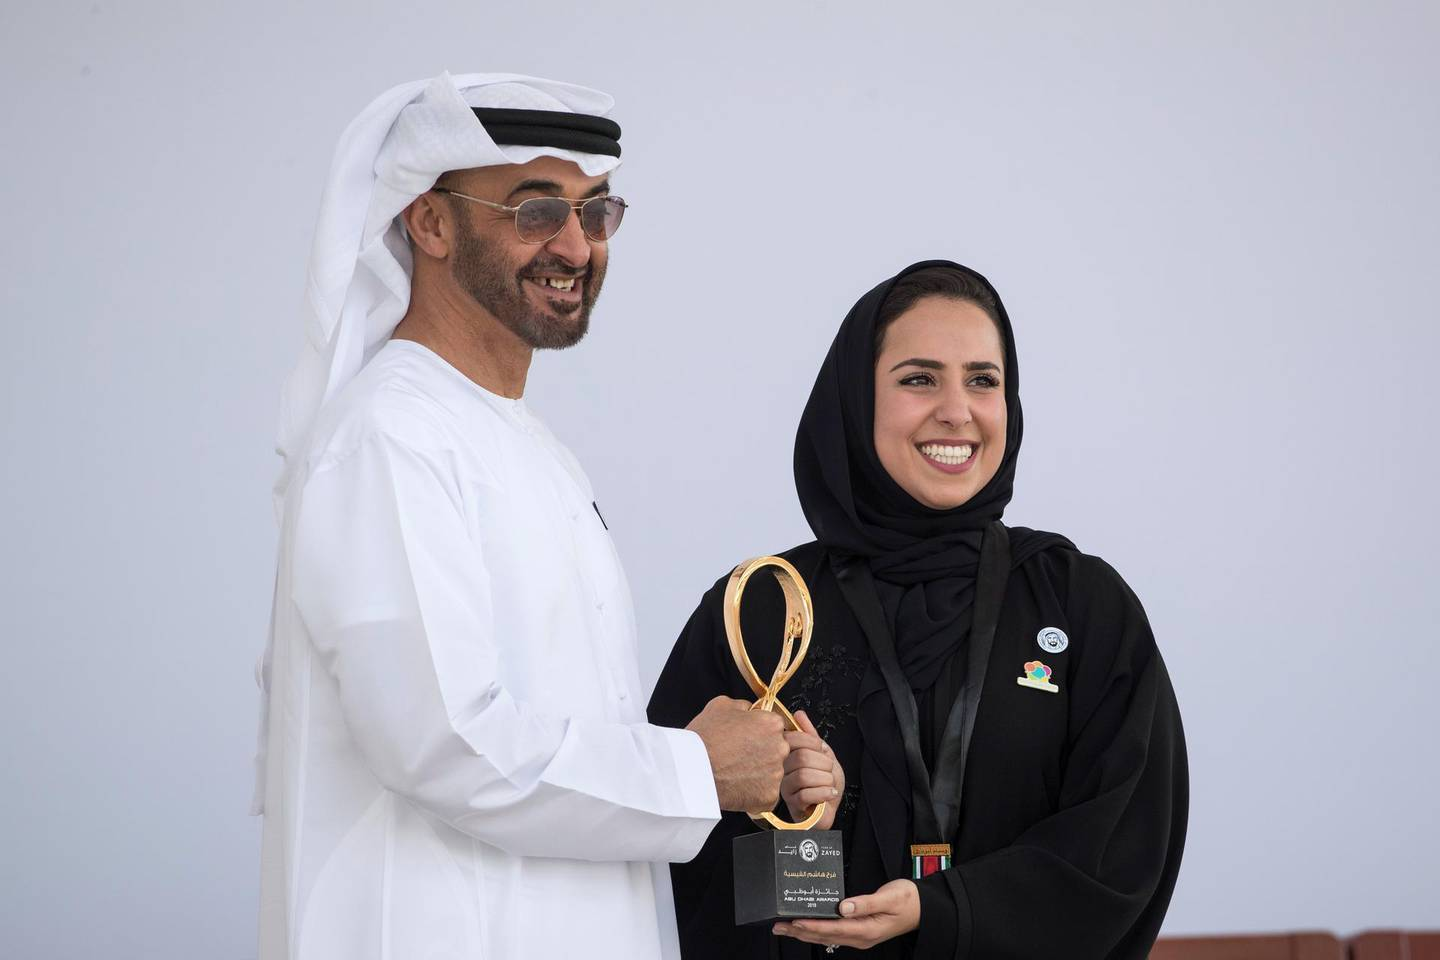 ABU DHABI, UNITED ARAB EMIRATES -  March 12, 2018: HH Sheikh Mohamed bin Zayed Al Nahyan, Crown Prince of Abu Dhabi and Deputy Supreme Commander of the UAE Armed Forces (L), presents an Abu Dhabi Award to Farah Hashem Al Qaissieh (R), during the awards ceremony at the Sea Palace. ( Ryan Carter for the Crown Prince Court - Abu Dhabi ) ---